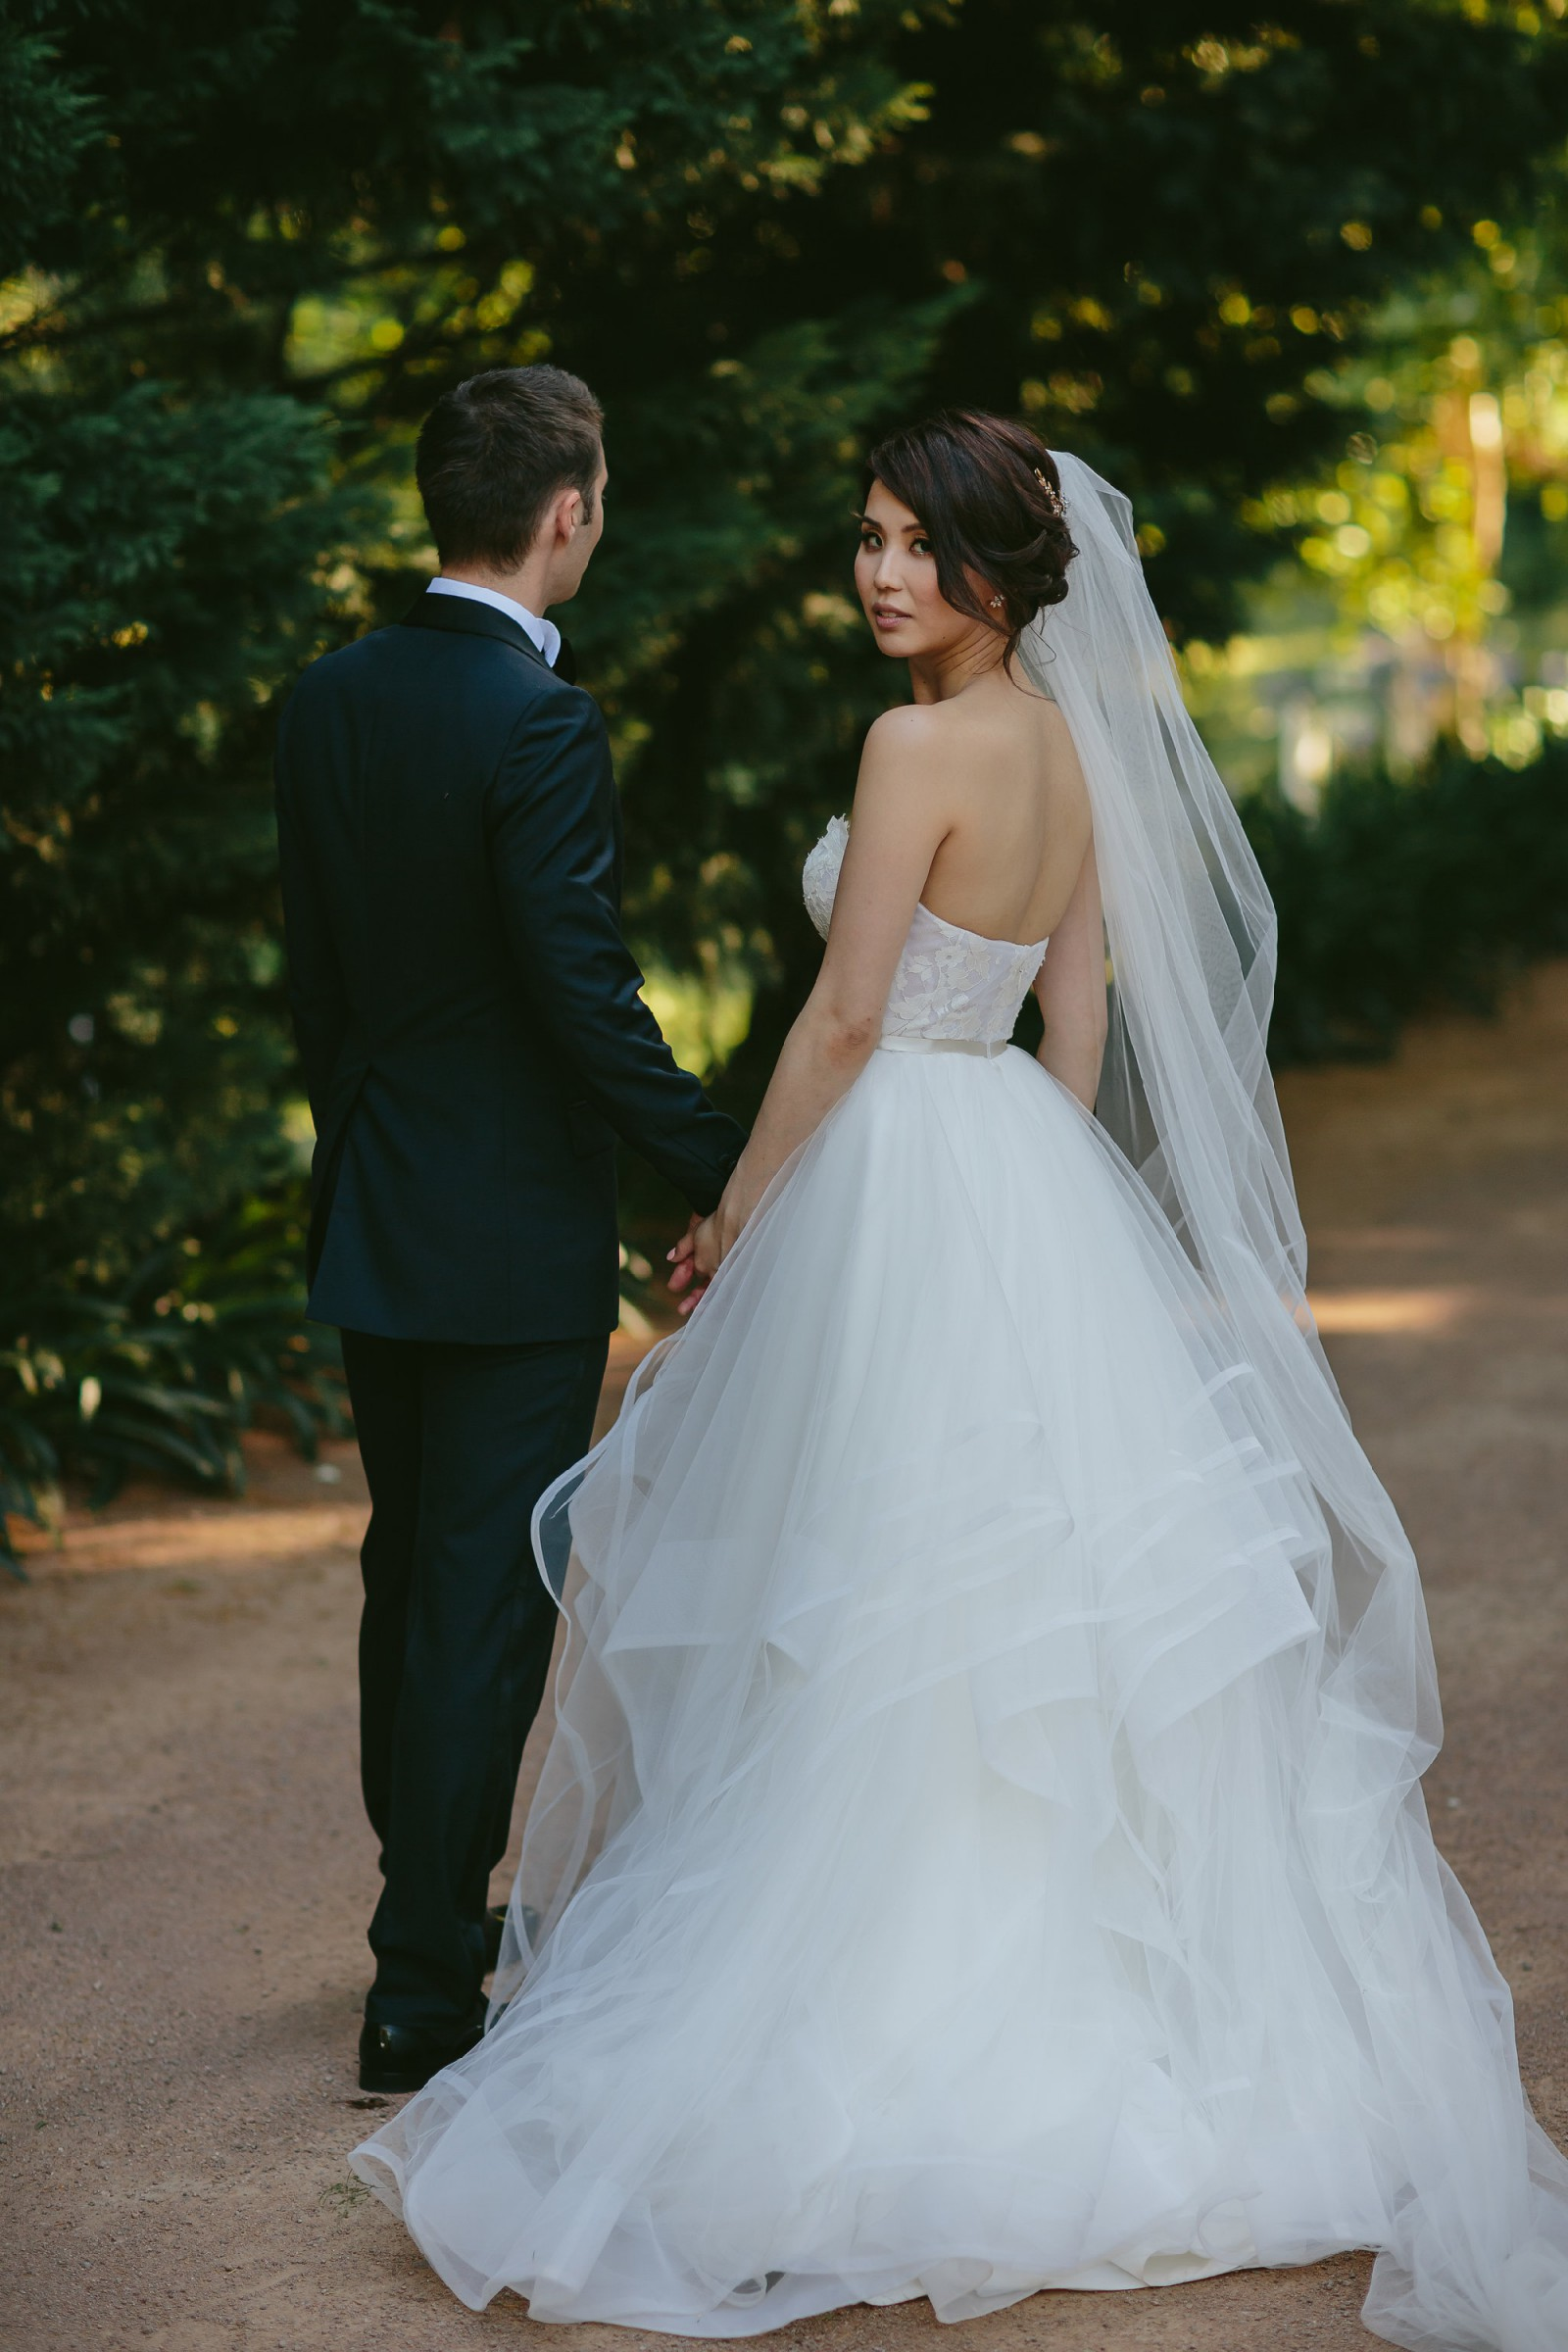 Low Back Wedding Dresses Sydney : Paid chantelle with elysia skirt wedding dress on sale off